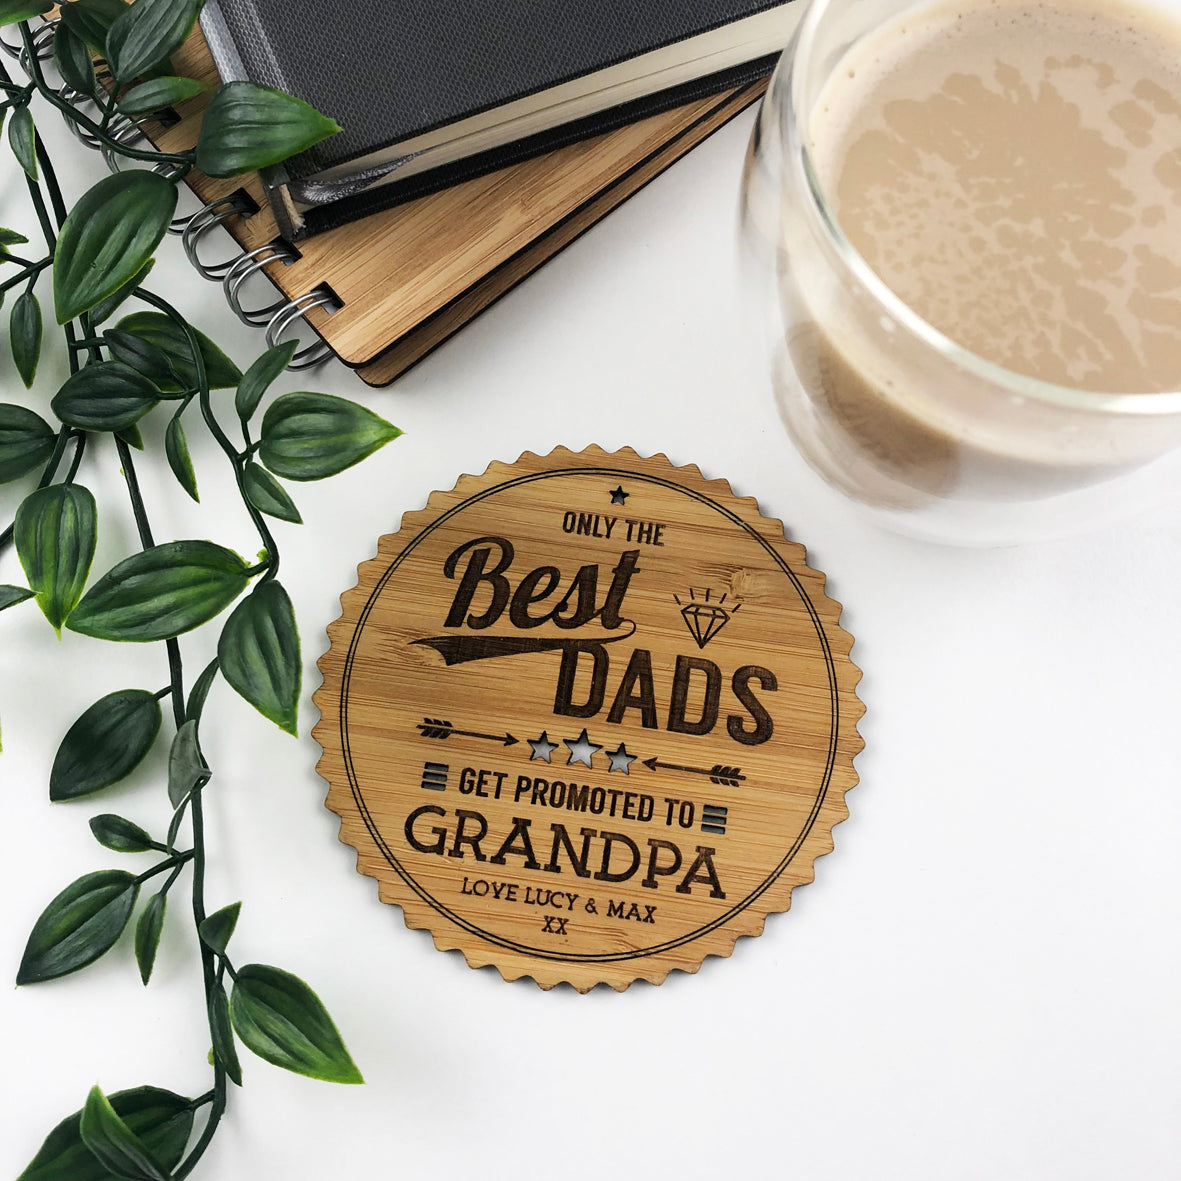 Only The Best Dads Drink Coaster